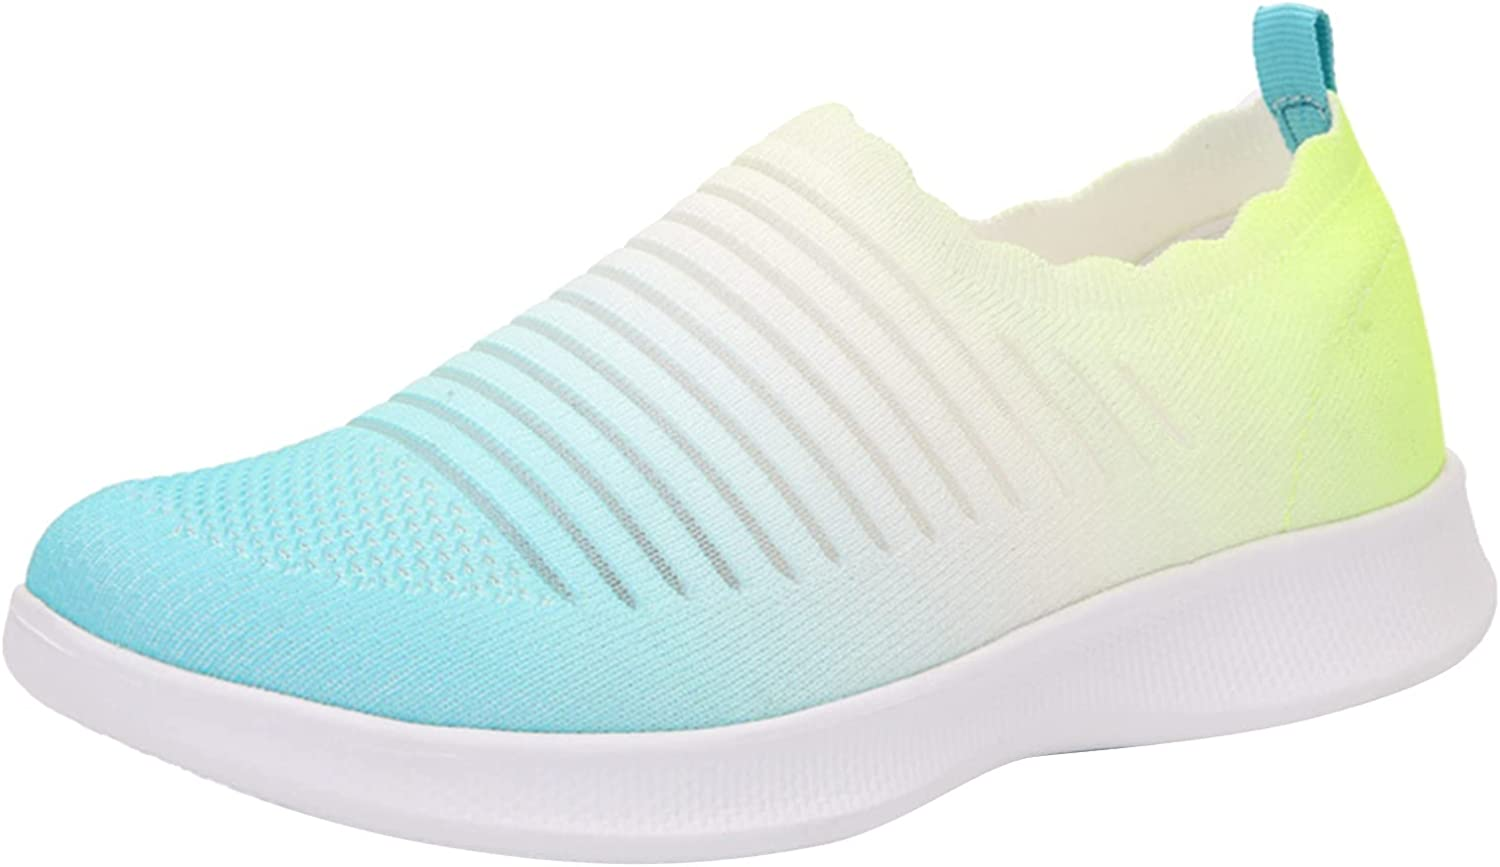 NLLSHGJ Running Shoes for Women Wide Width Breathable Slip-on Wedges Outdoor Leisure Sport Gym Jogging Tennis Fitness Sneakers